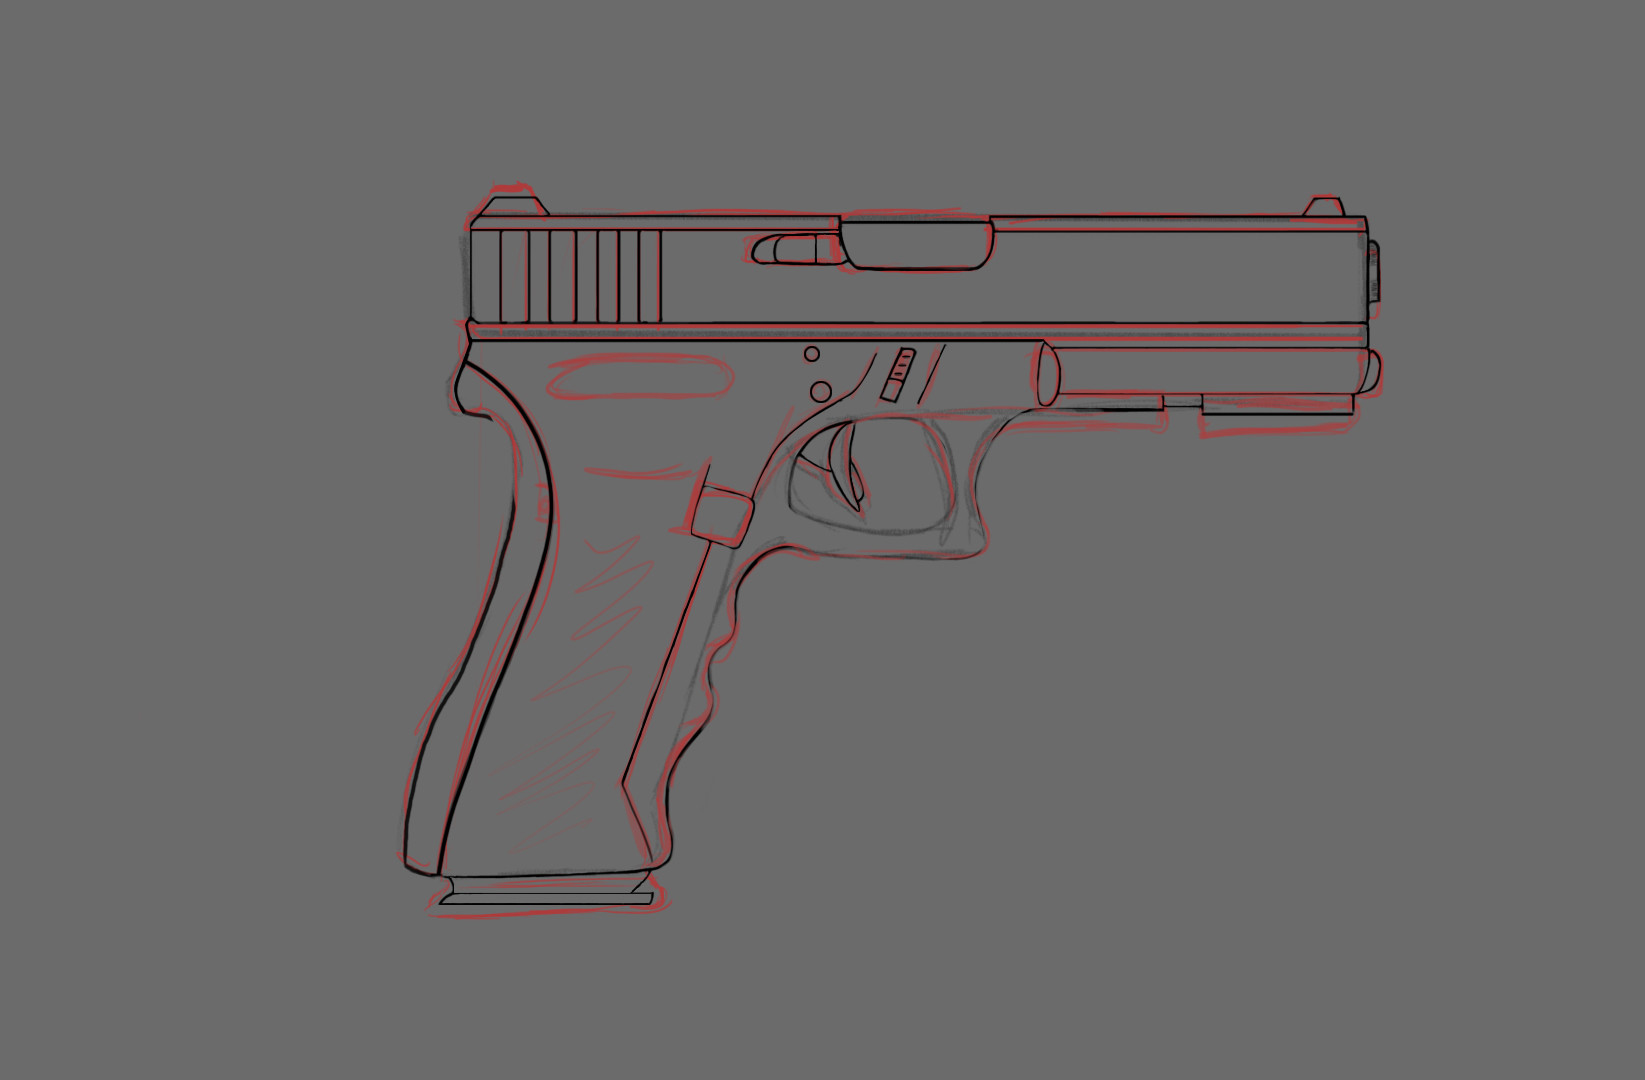 Drawn pistol glock 17 Jayden the Pistol 17 then